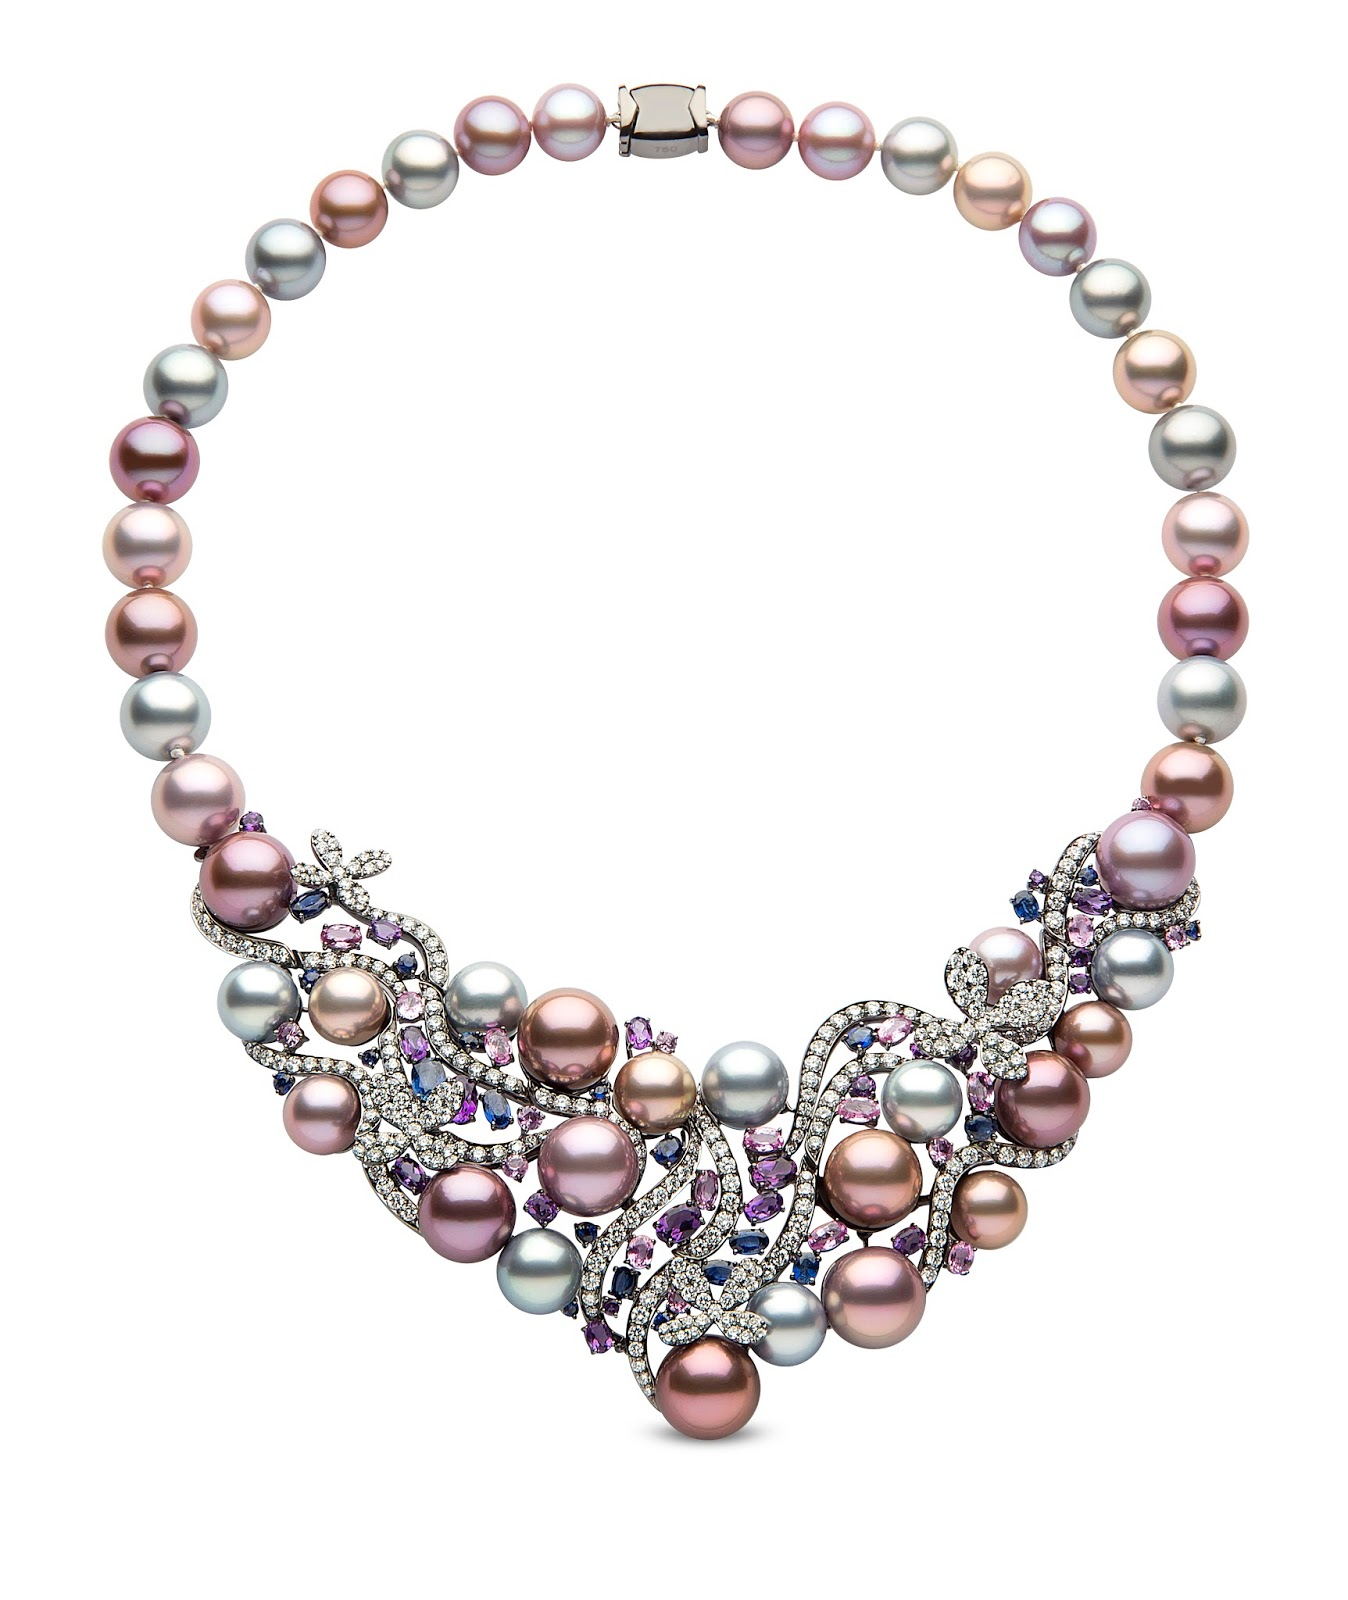 Jewelry news network pearl jewelry sheds its old image for High design jewelry nyc